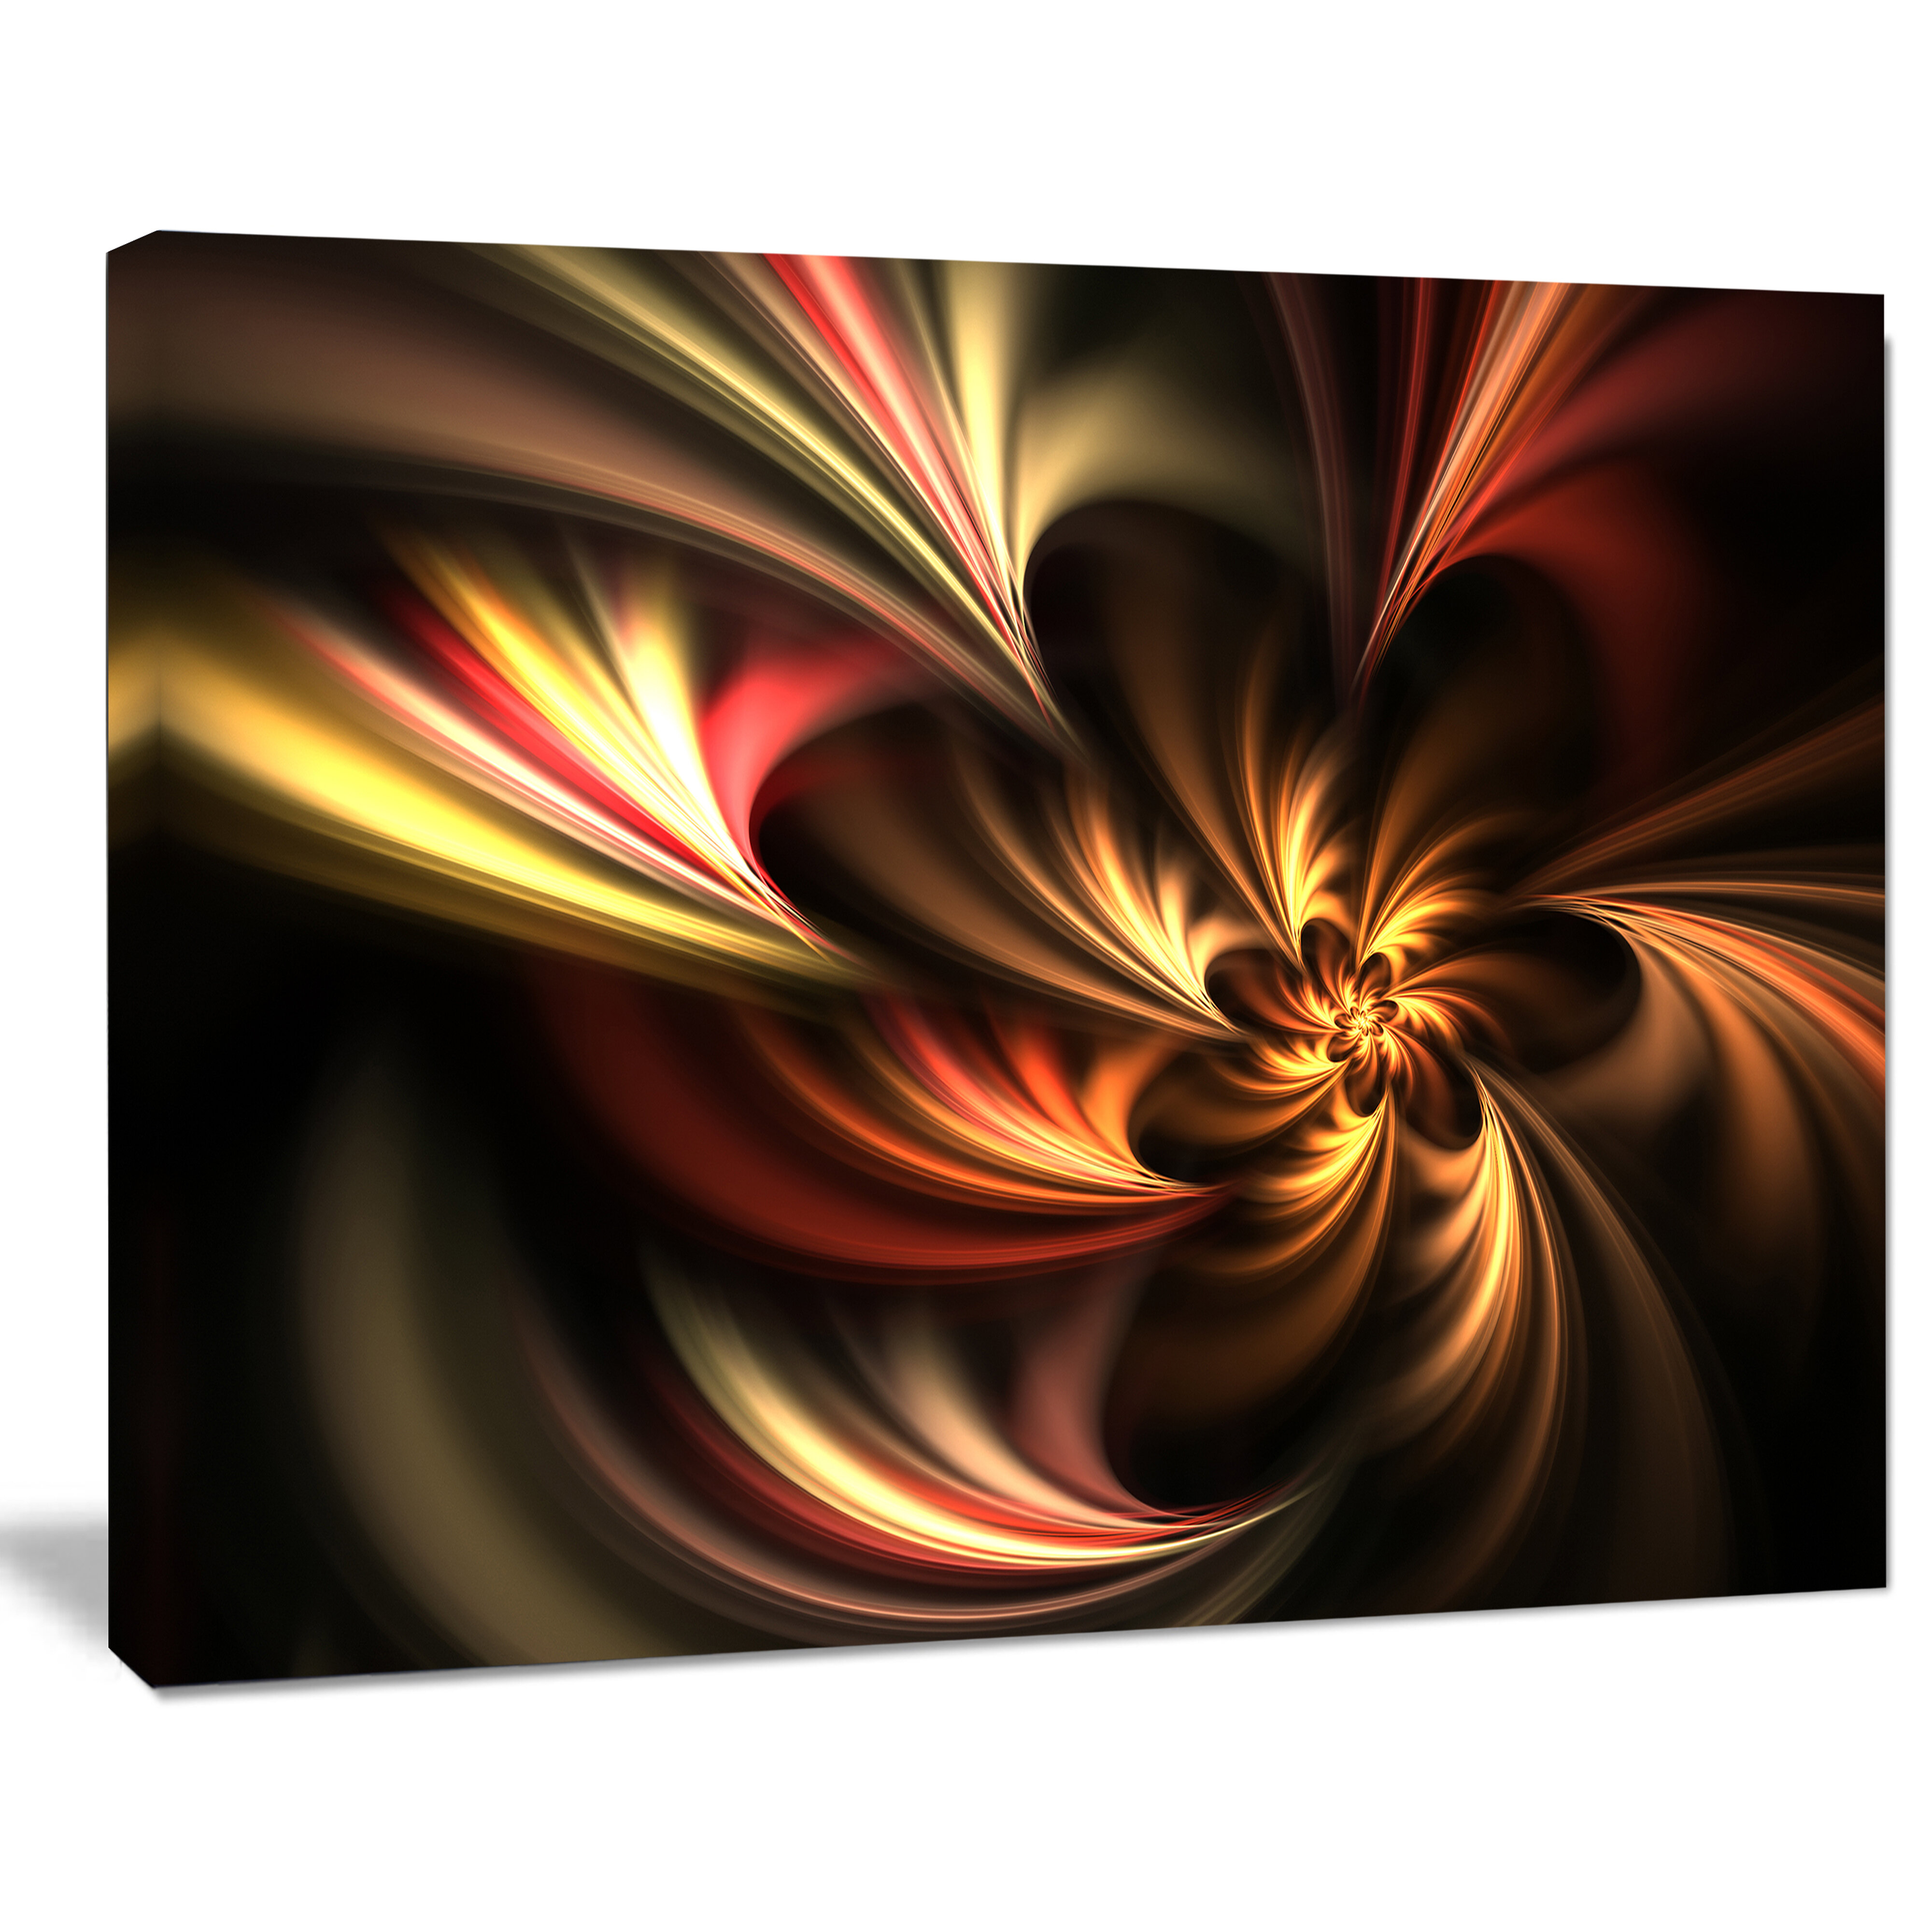 Designart Glossy Yellow And Red Fractal Flower Graphic Art On Wrapped Canvas Reviews Wayfair